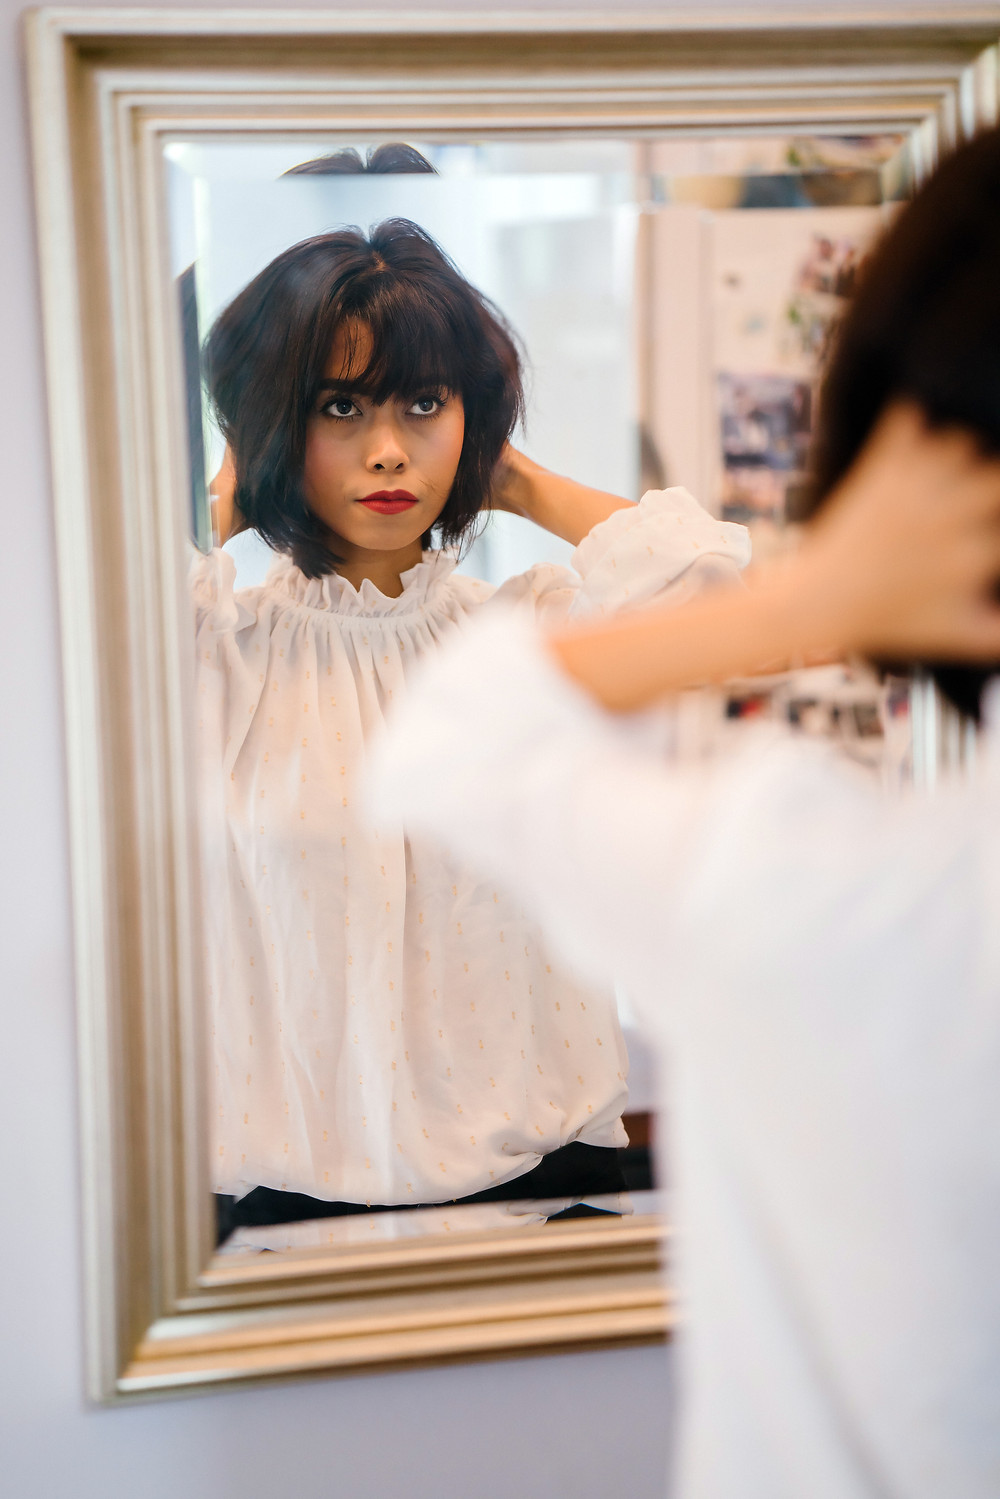 confident woman looks in mirror at reflection, checks hair